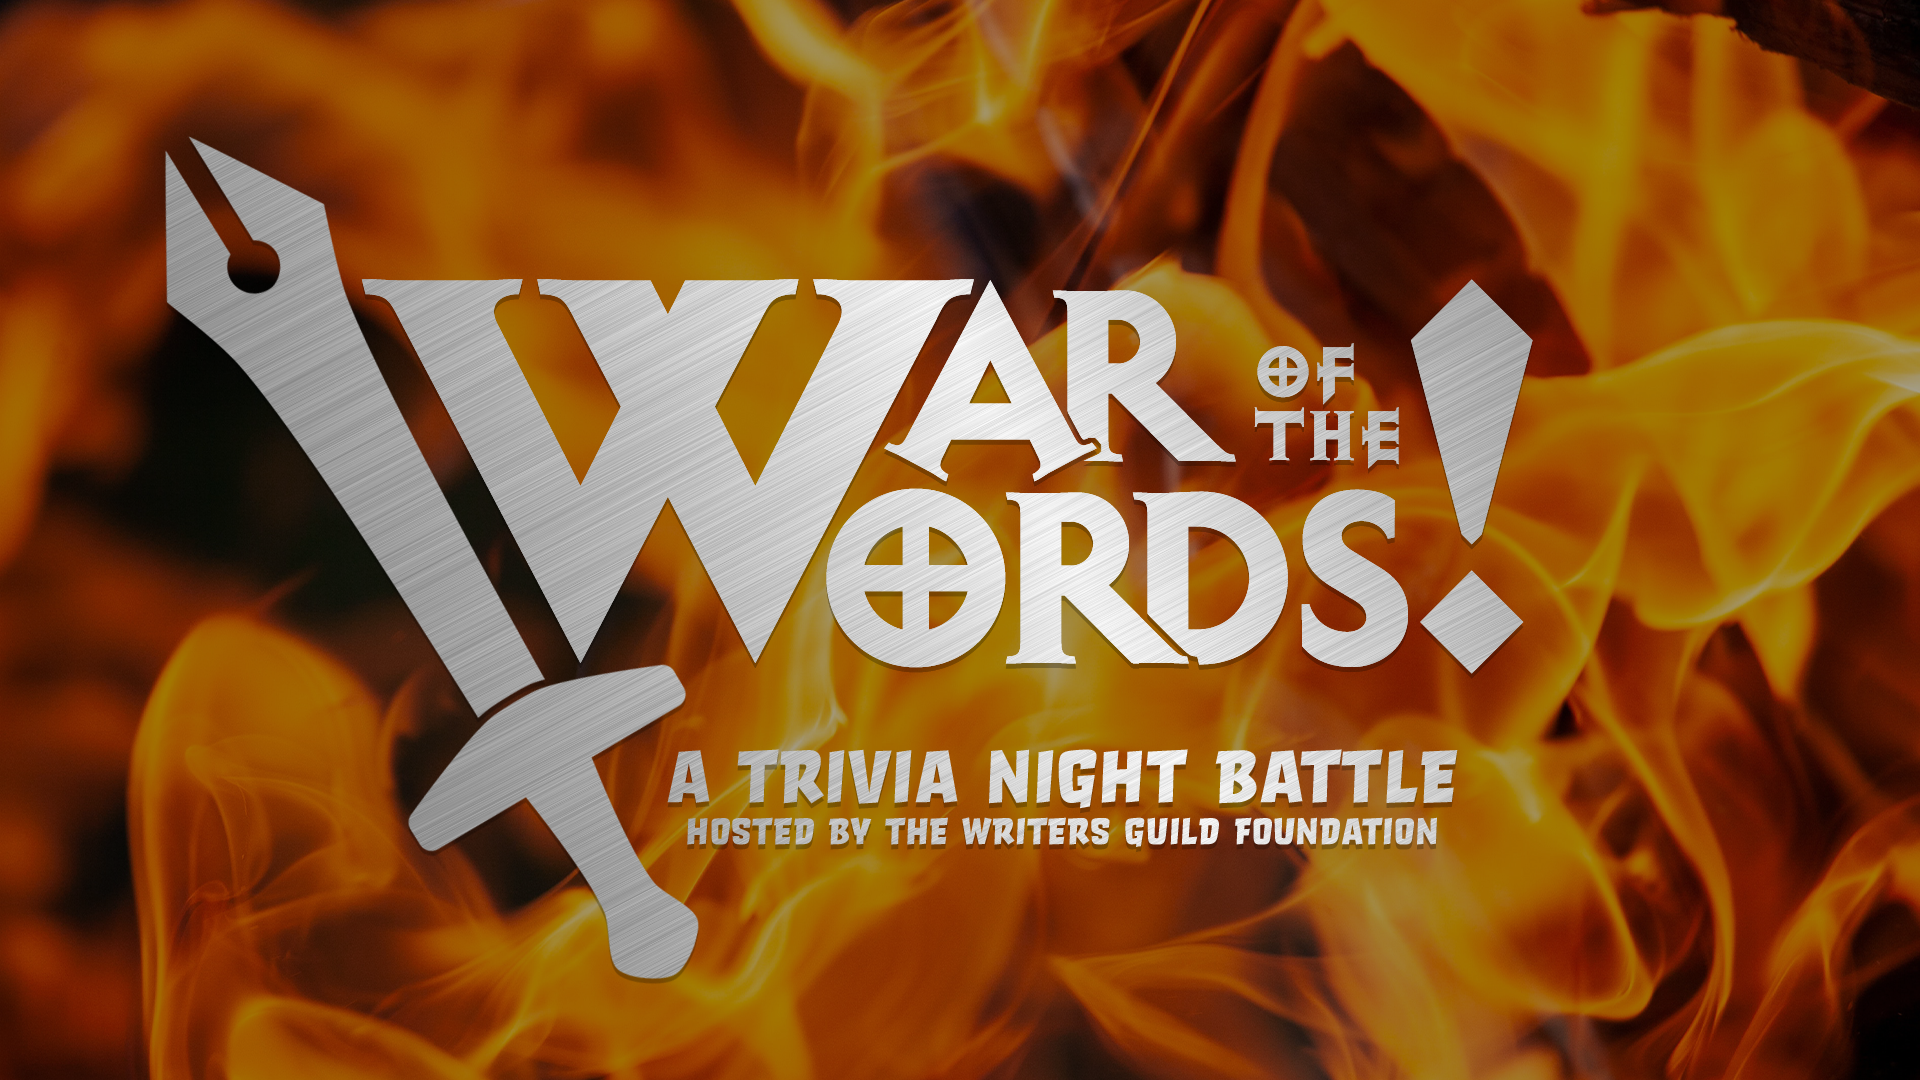 War of the Words promo image.